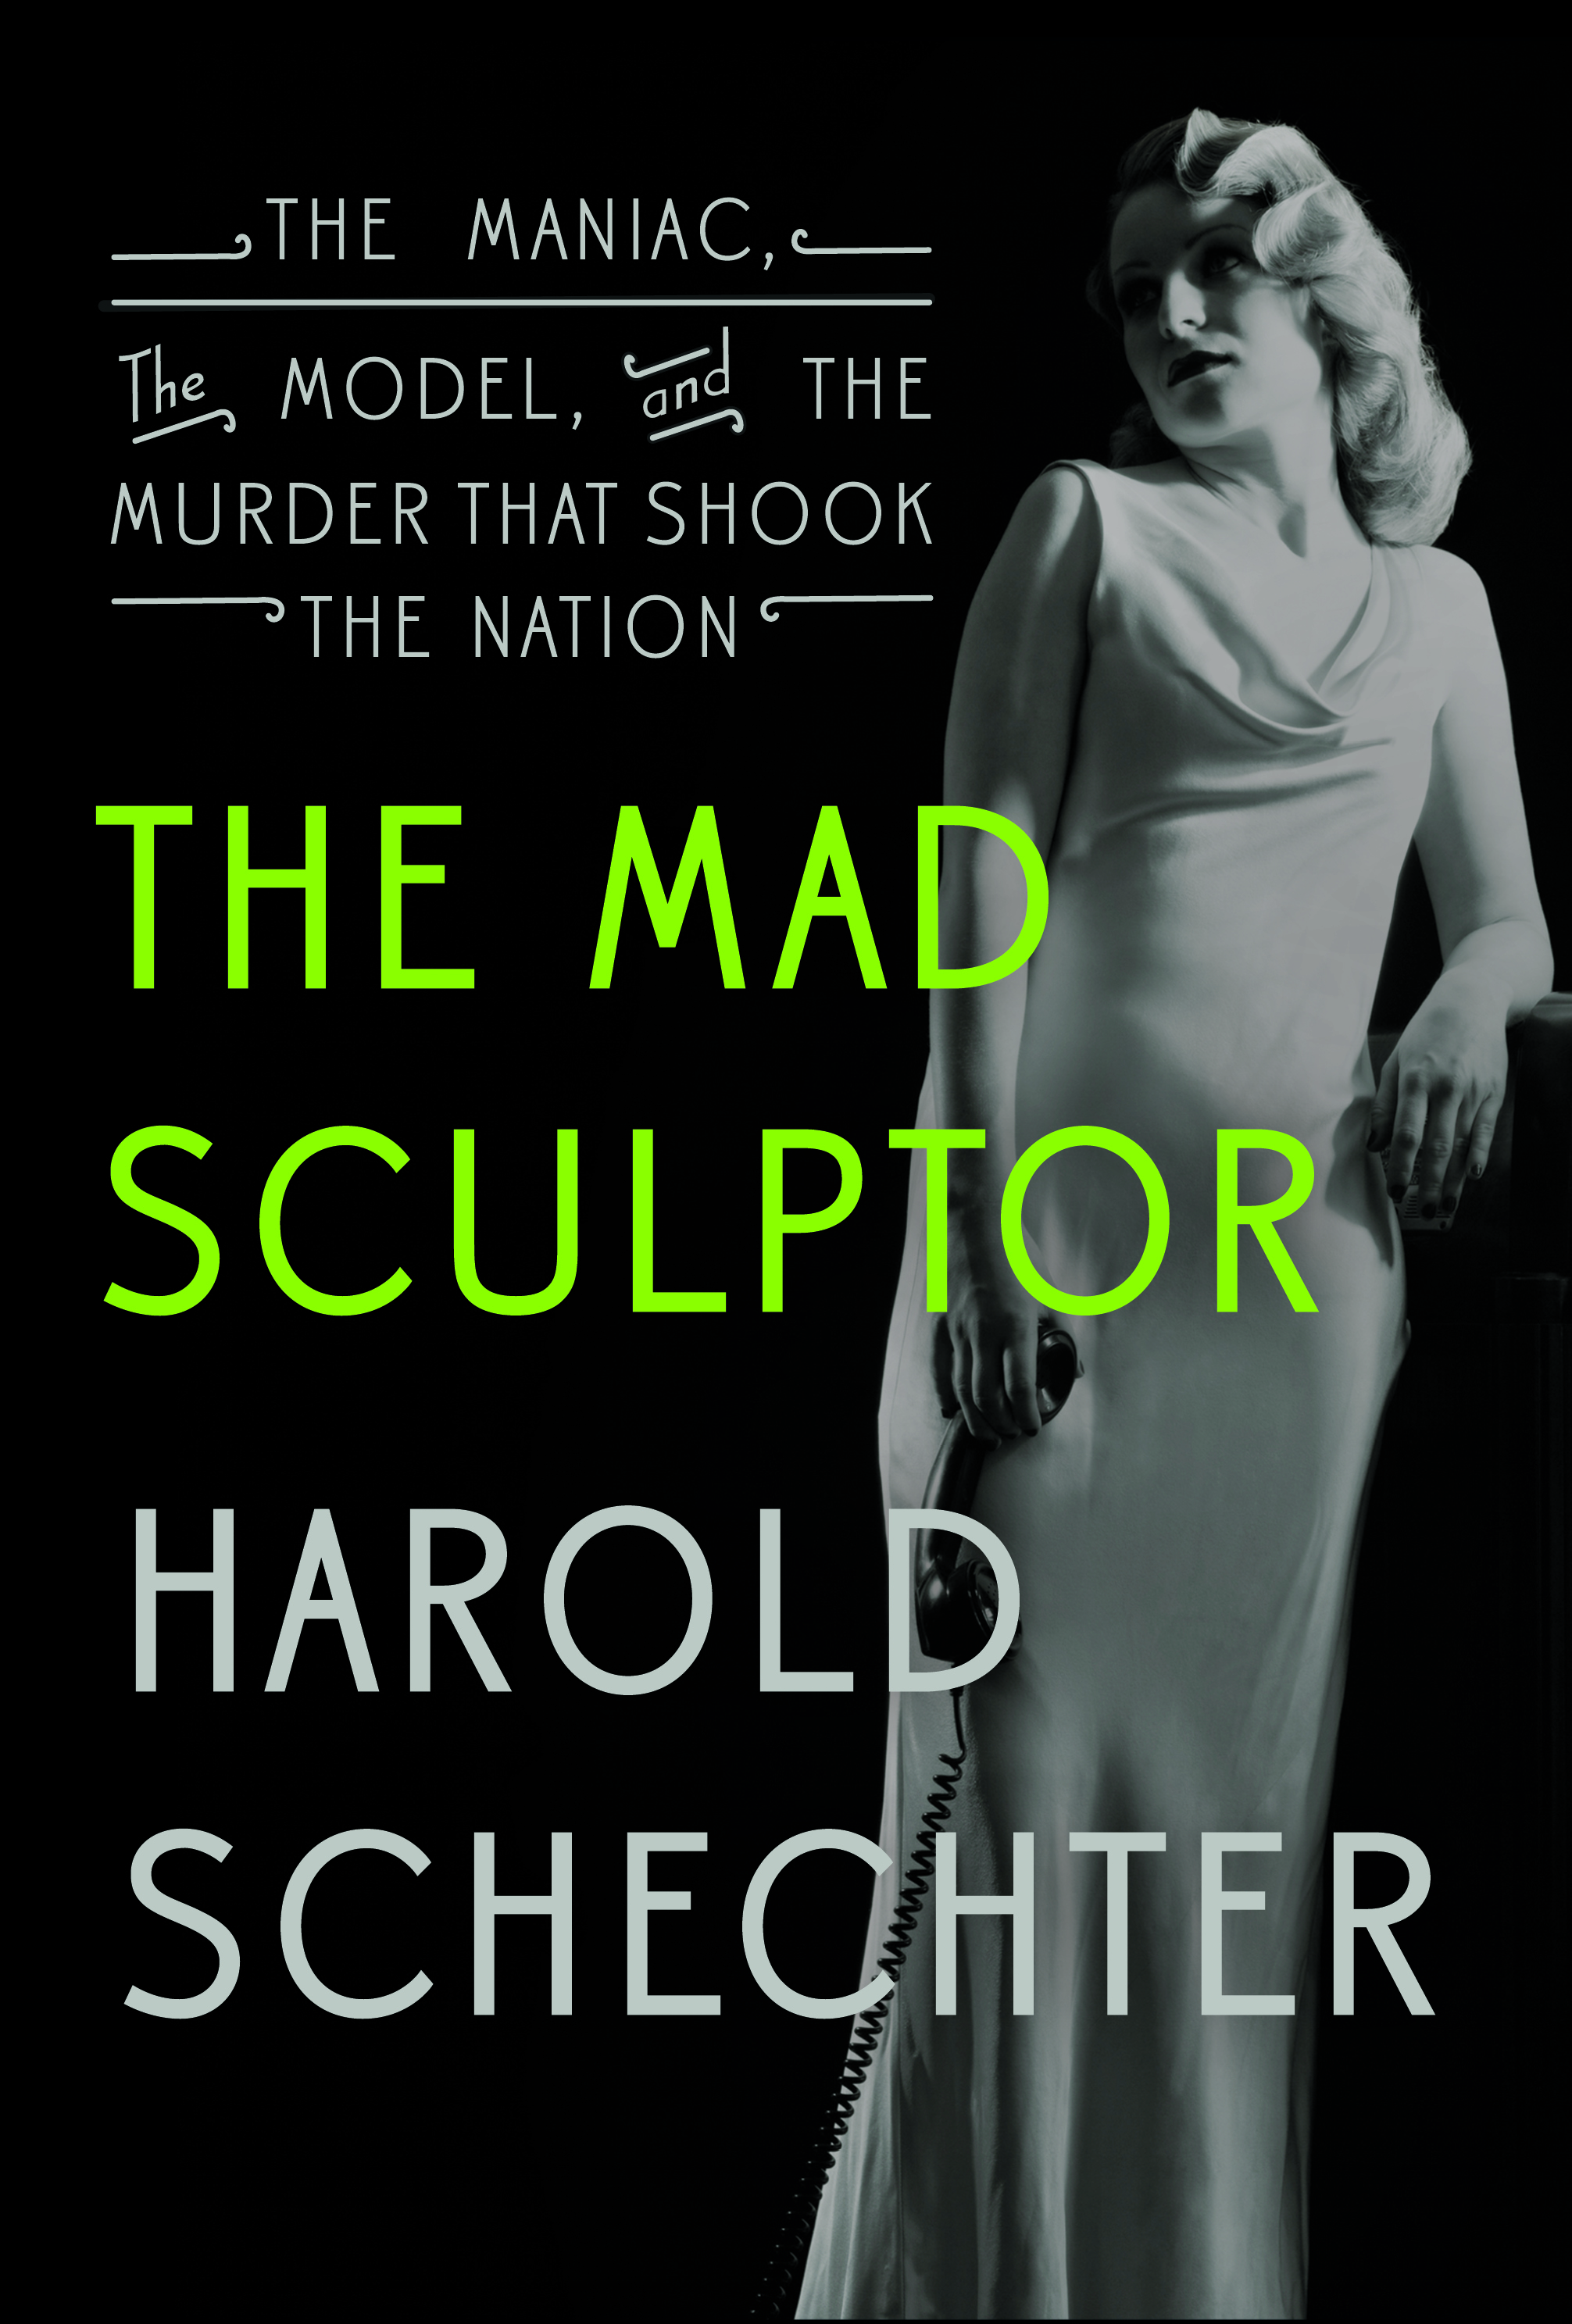 Book Launch: The Mad Sculptor by Harold Schechter, with Robert Kolker